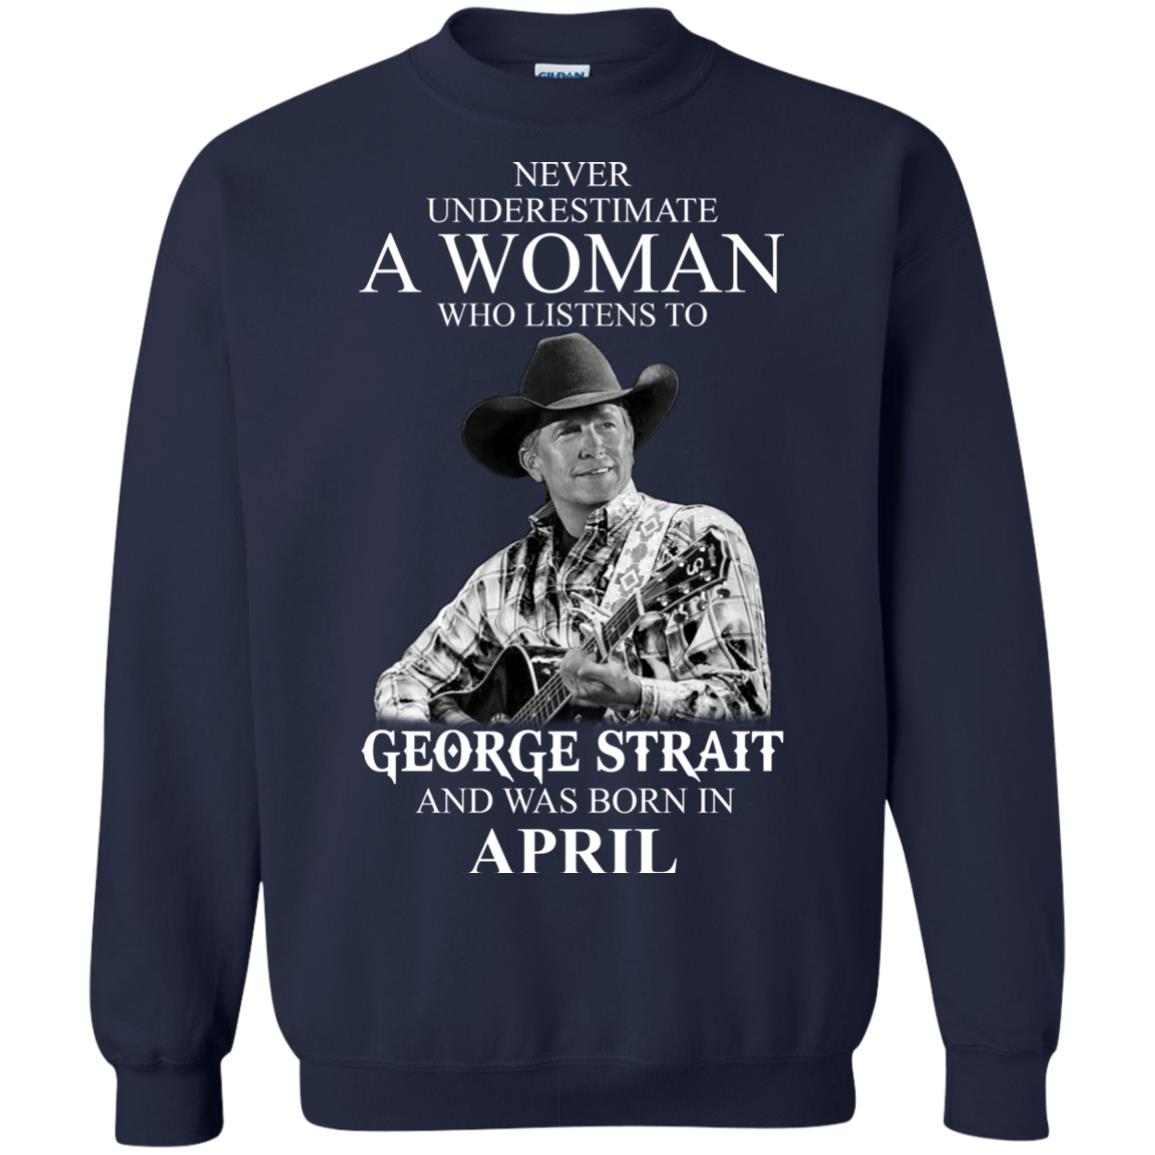 image 429 - Never Underestimate A Woman Who Listens To George Strait And Was Born In April shirt